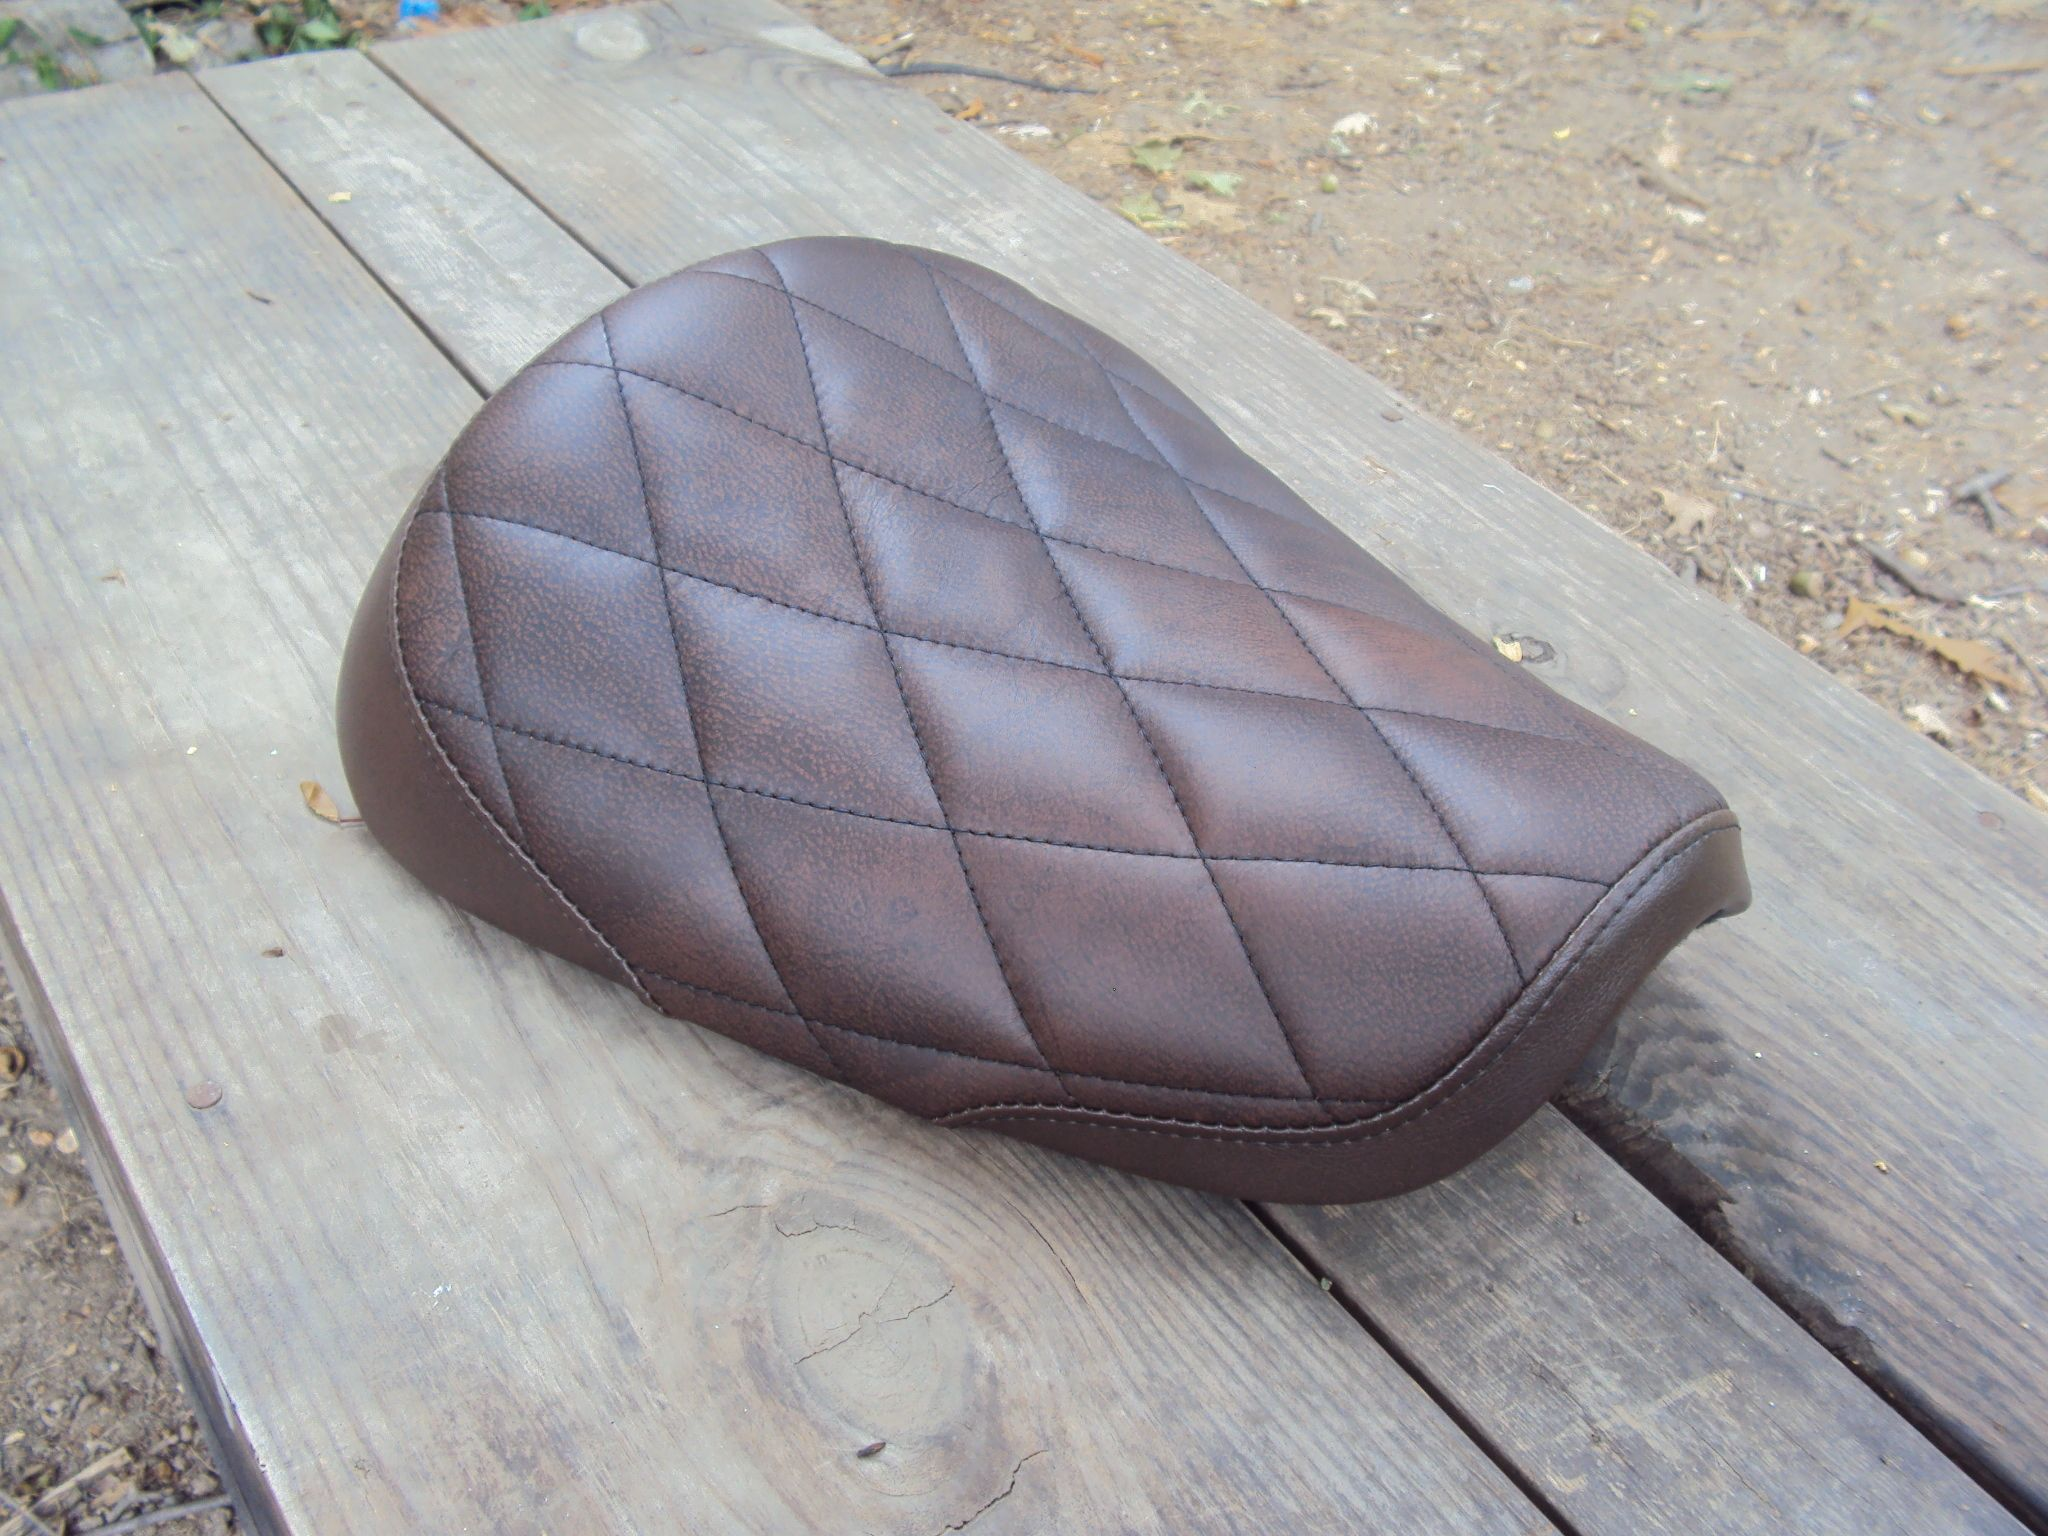 How To Recover A Motorcycle Seat Using Stretch Vinyl Fabric - Stretch vinyl for motorcycle seat